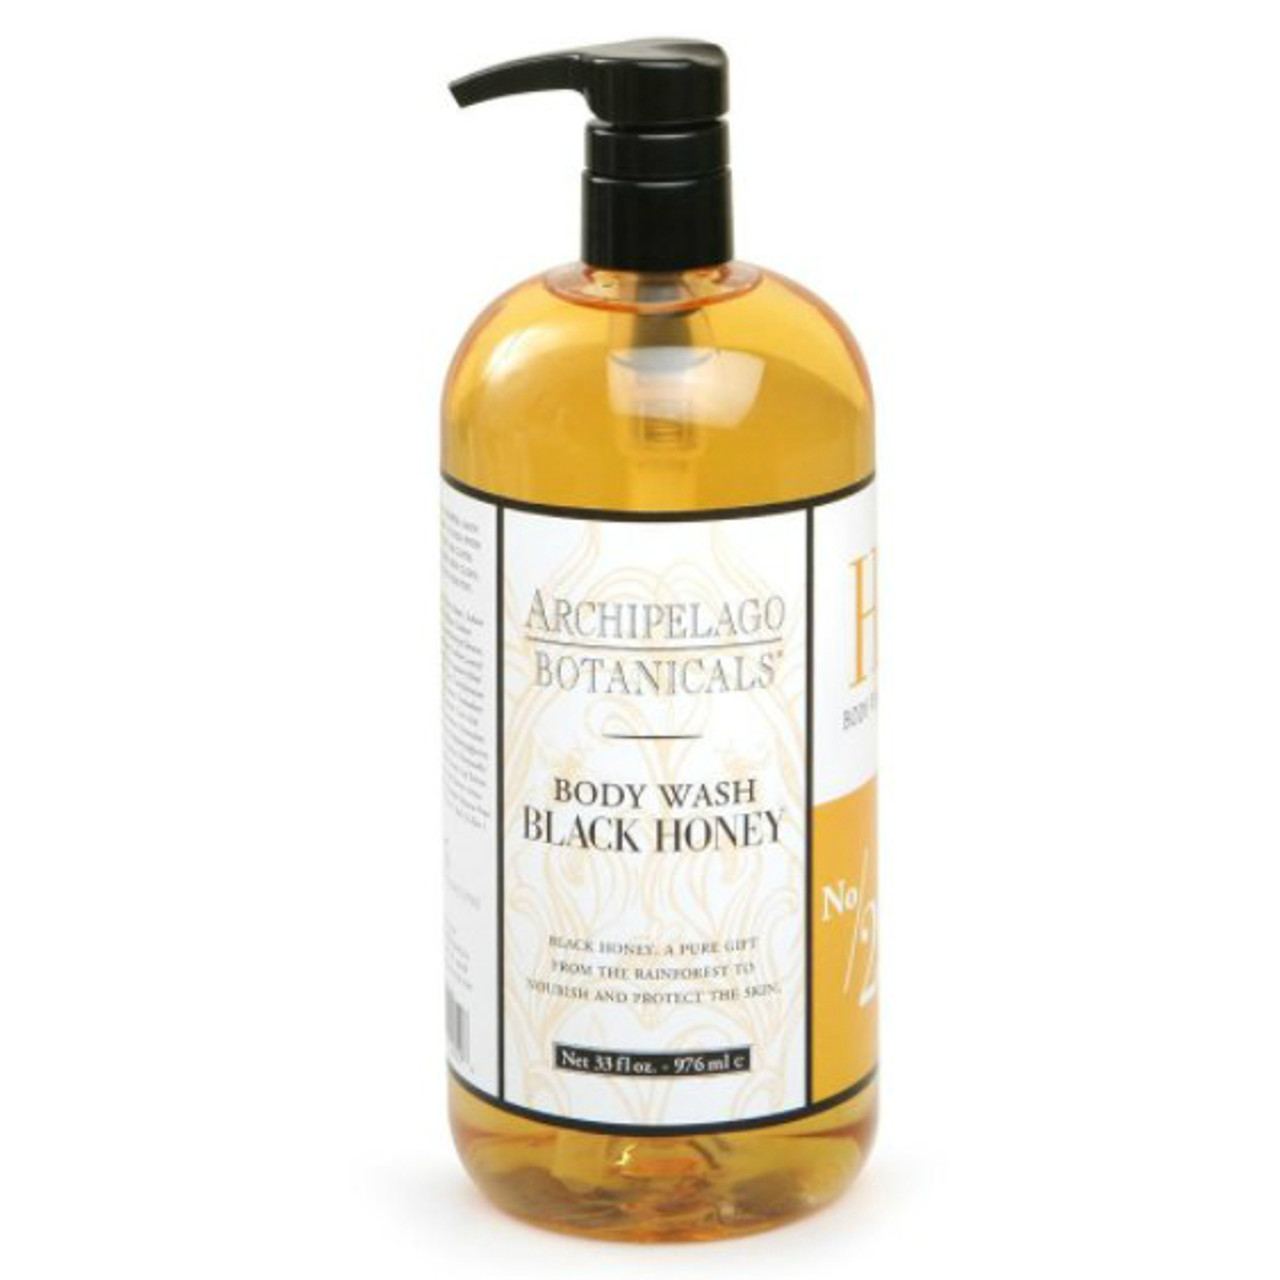 Archipelago Black Honey Body Wash 32 oz